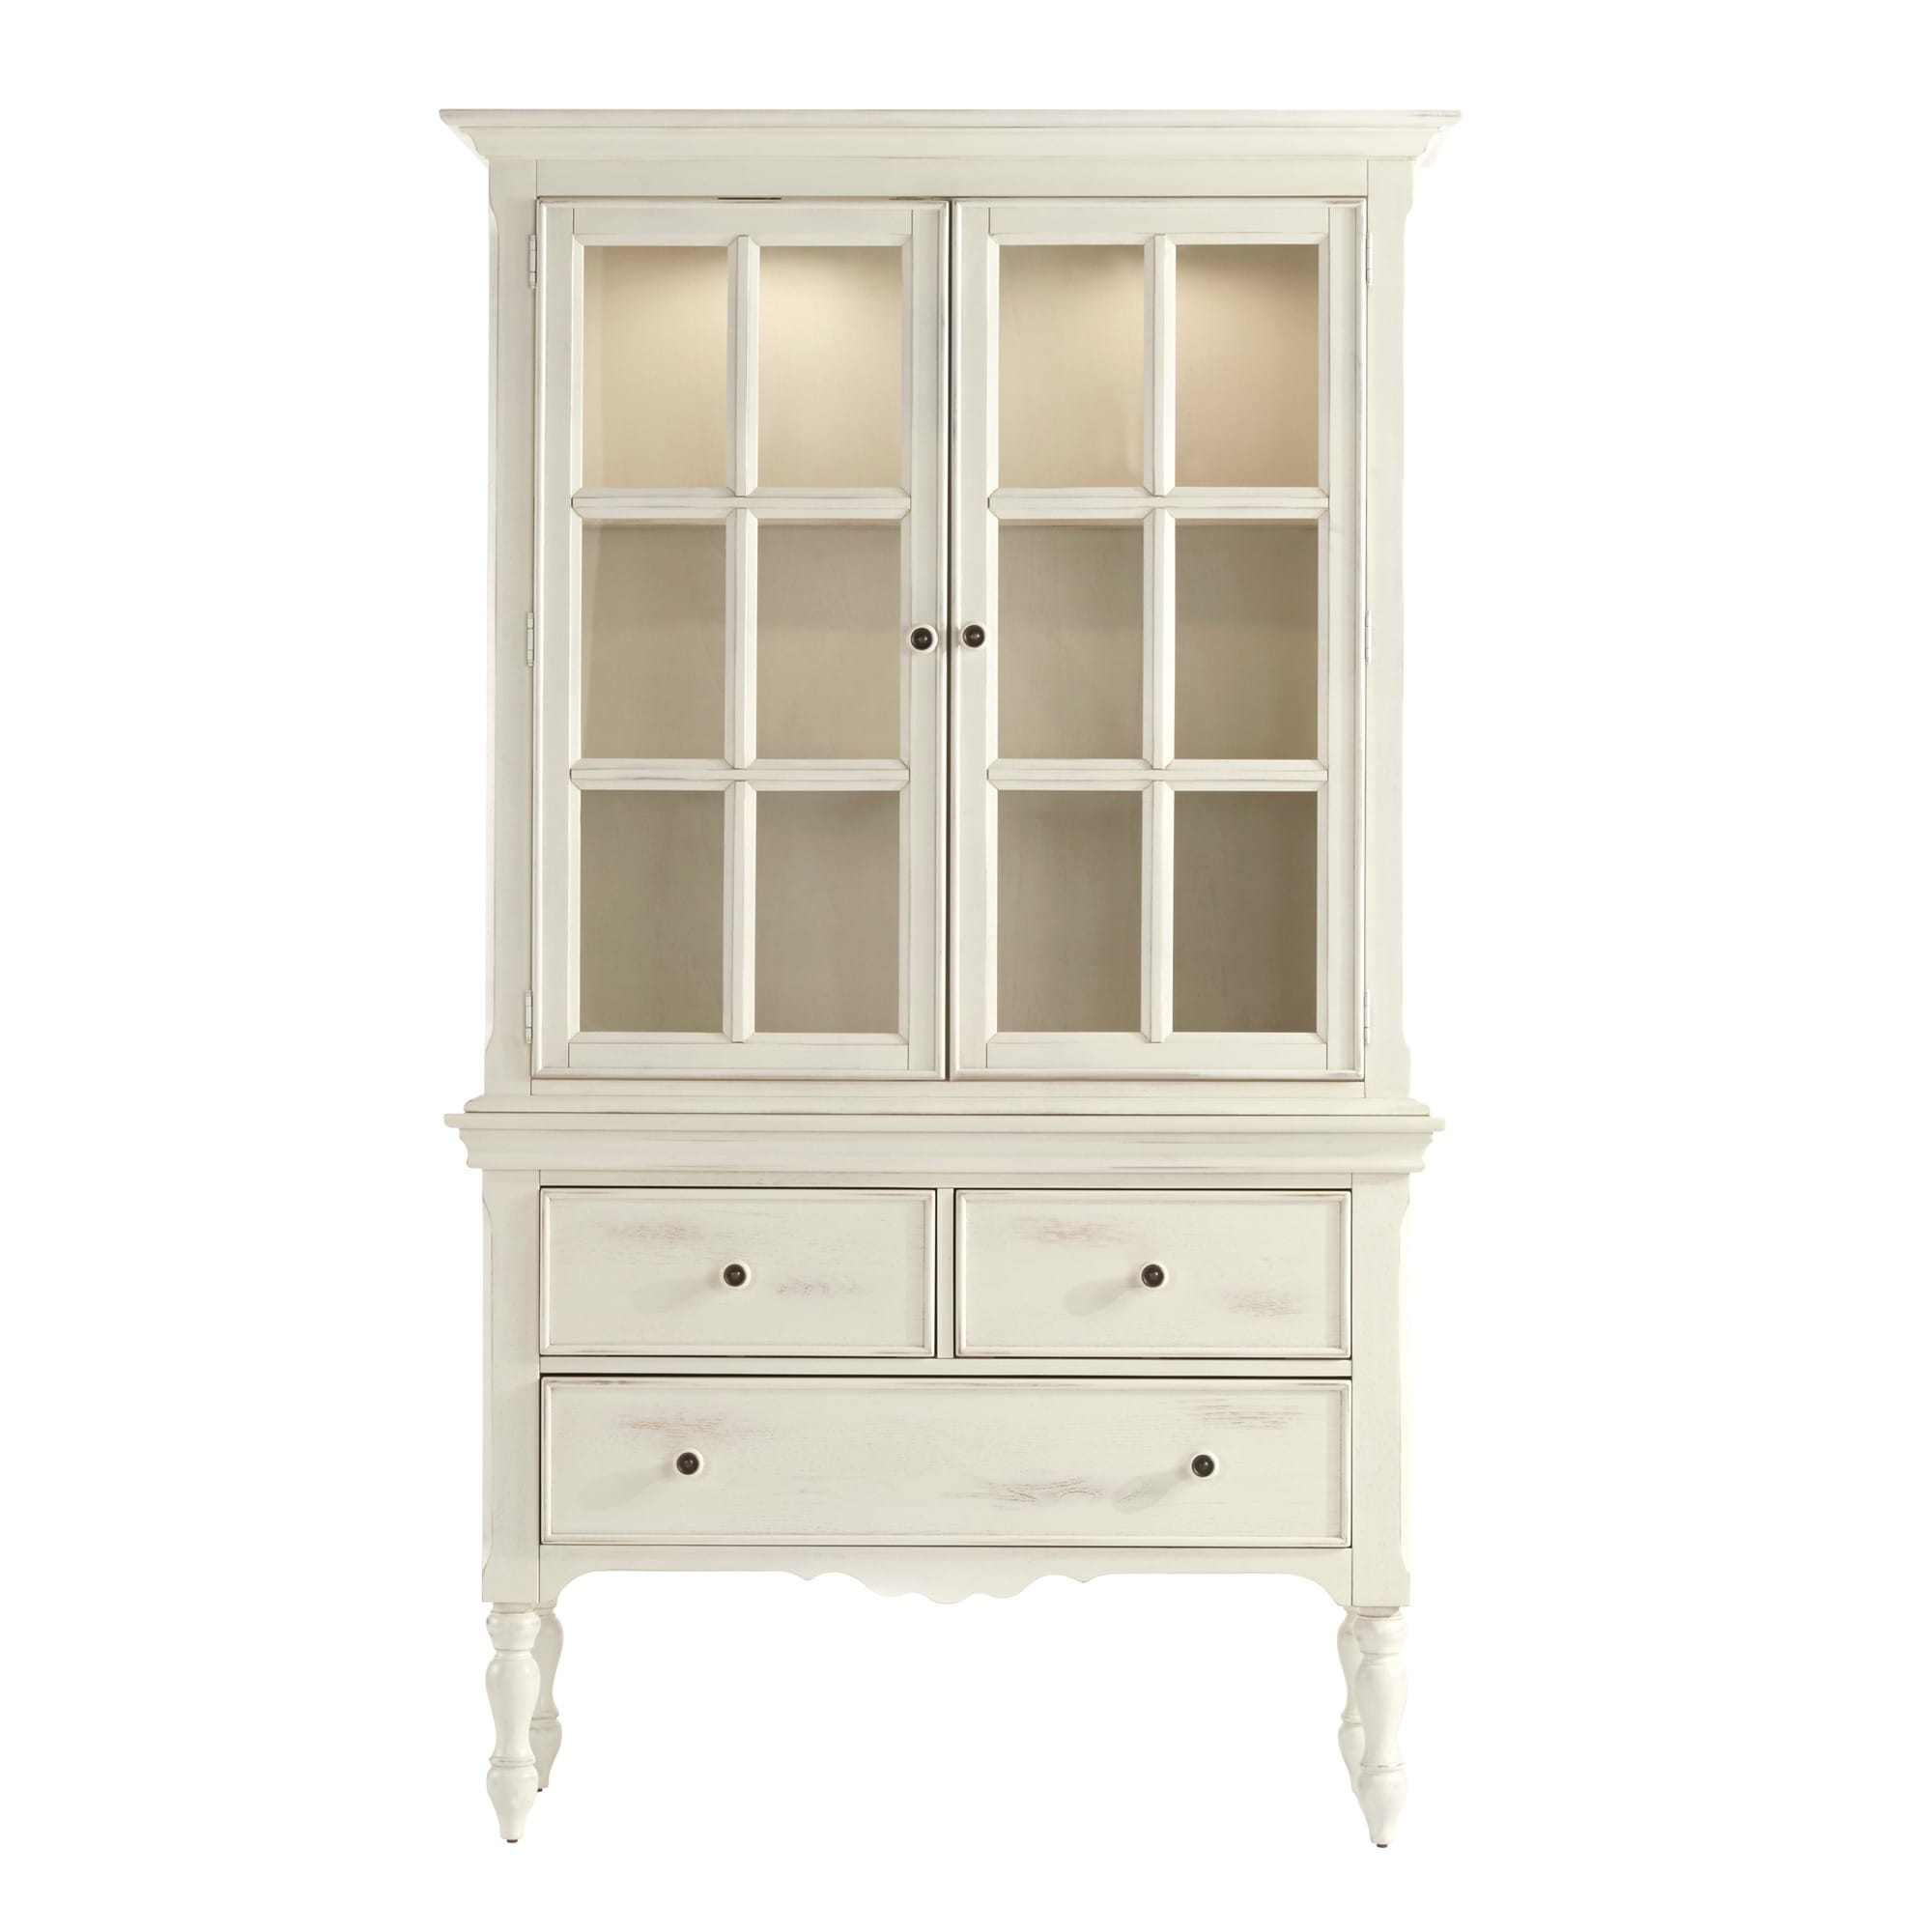 McKay Country Antique White Display Buffet Storage China Cabinet by iNSPIRE  Q Classic - Free Shipping Today - Overstock.com - 17228686